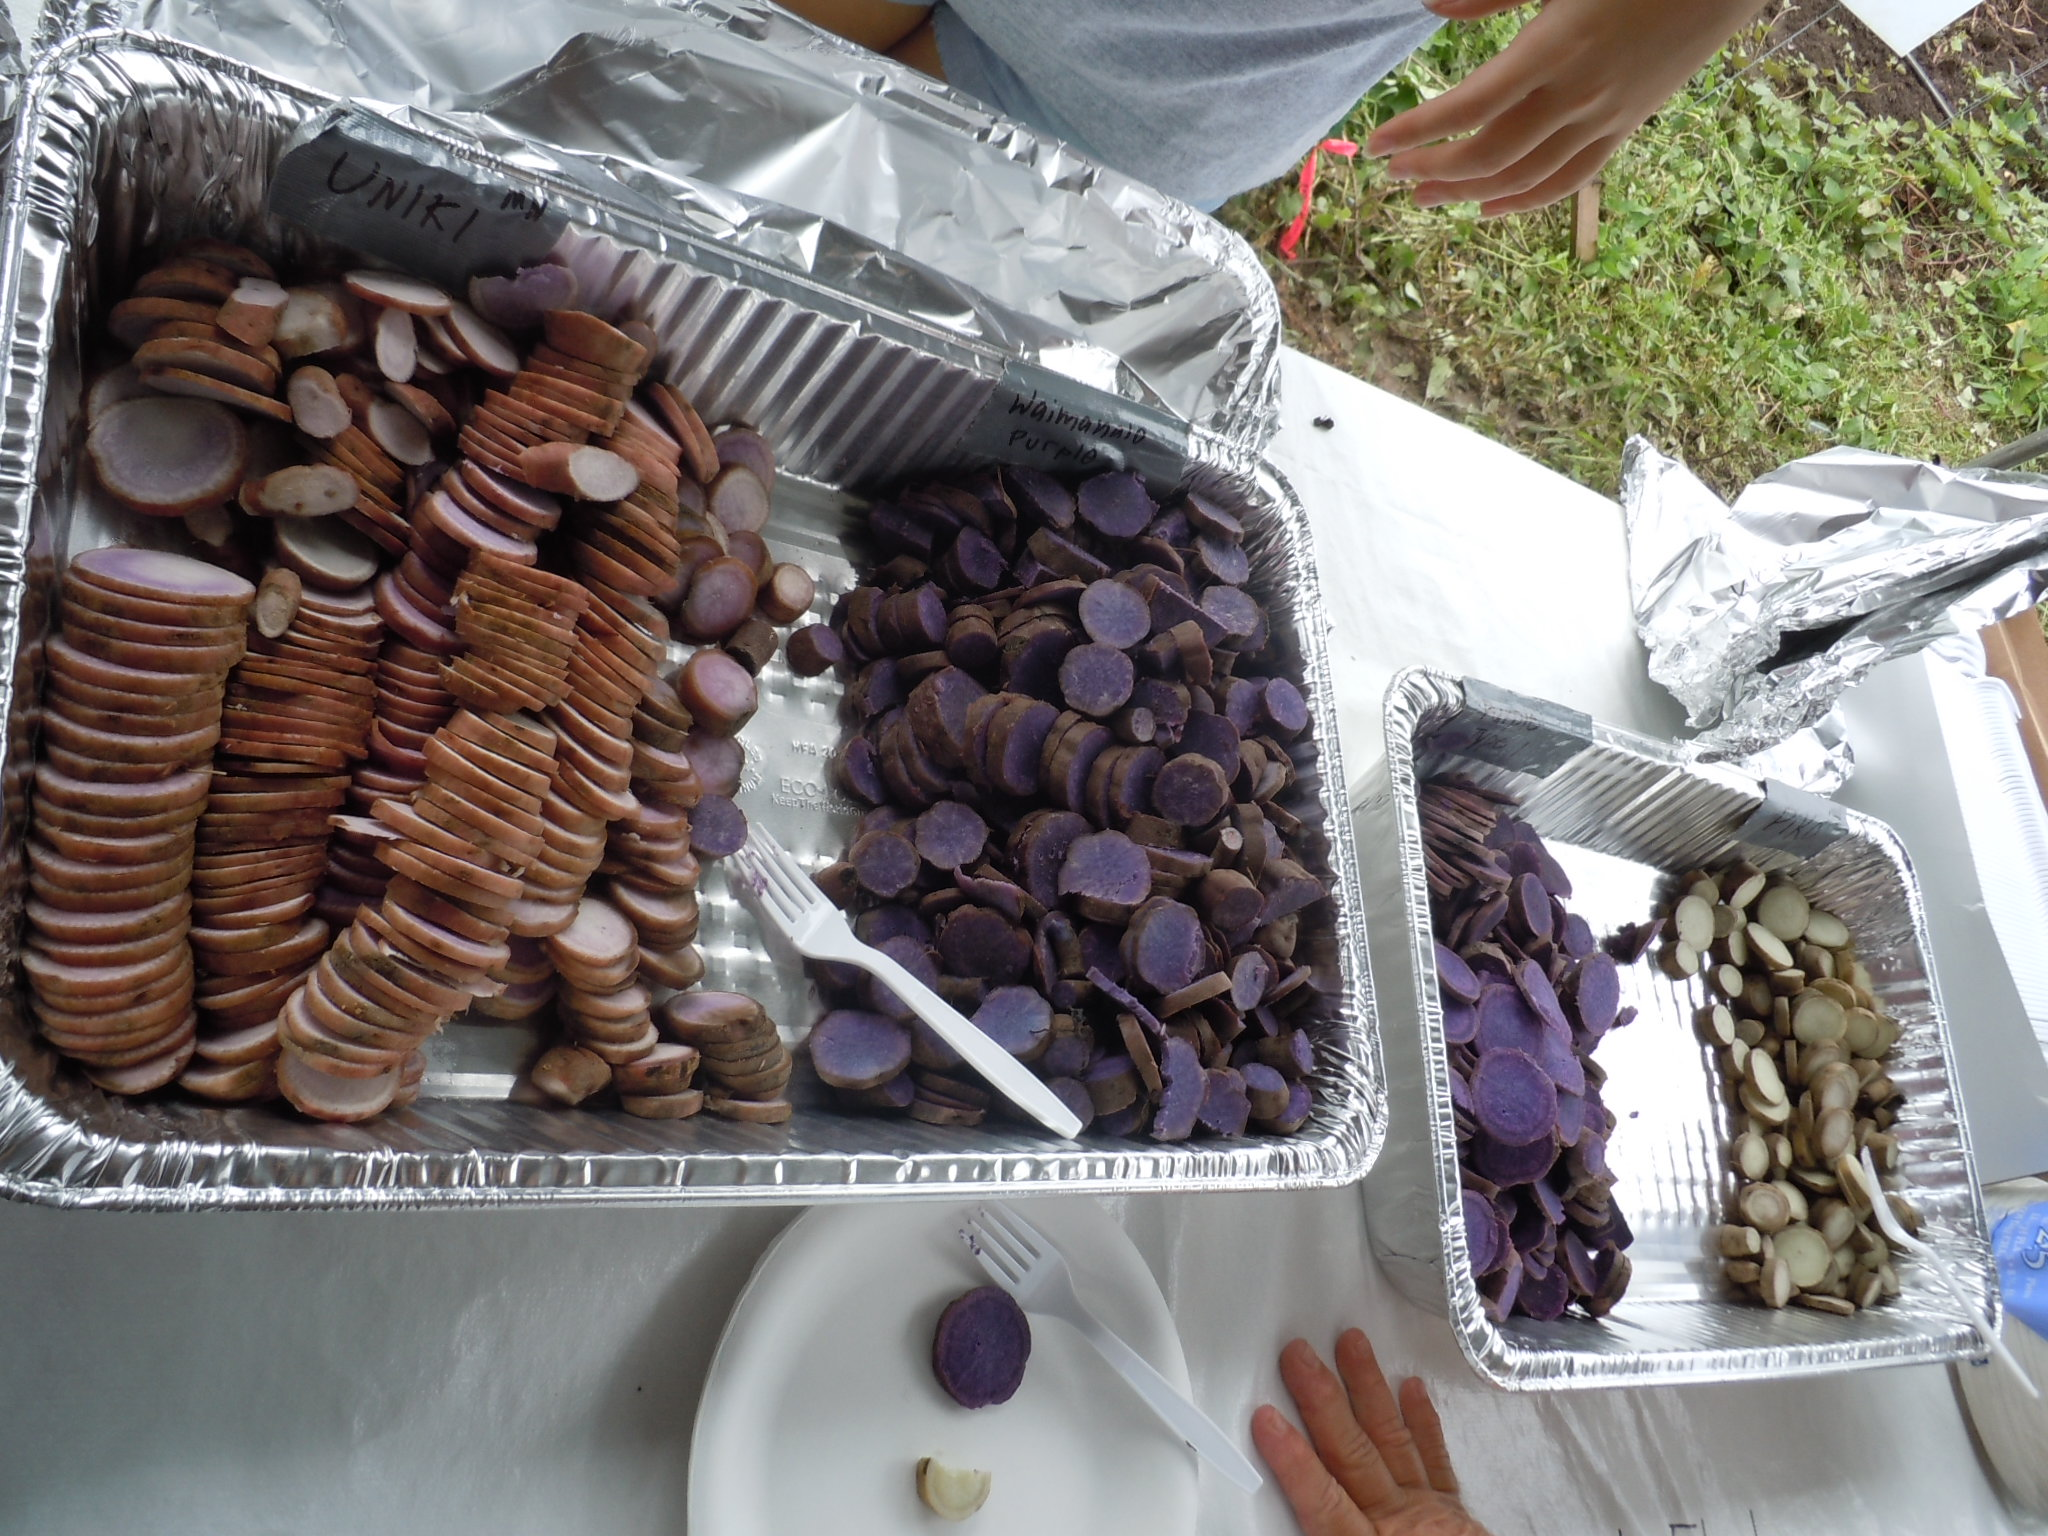 Department of agriculture sweet potato field day in waimanalo